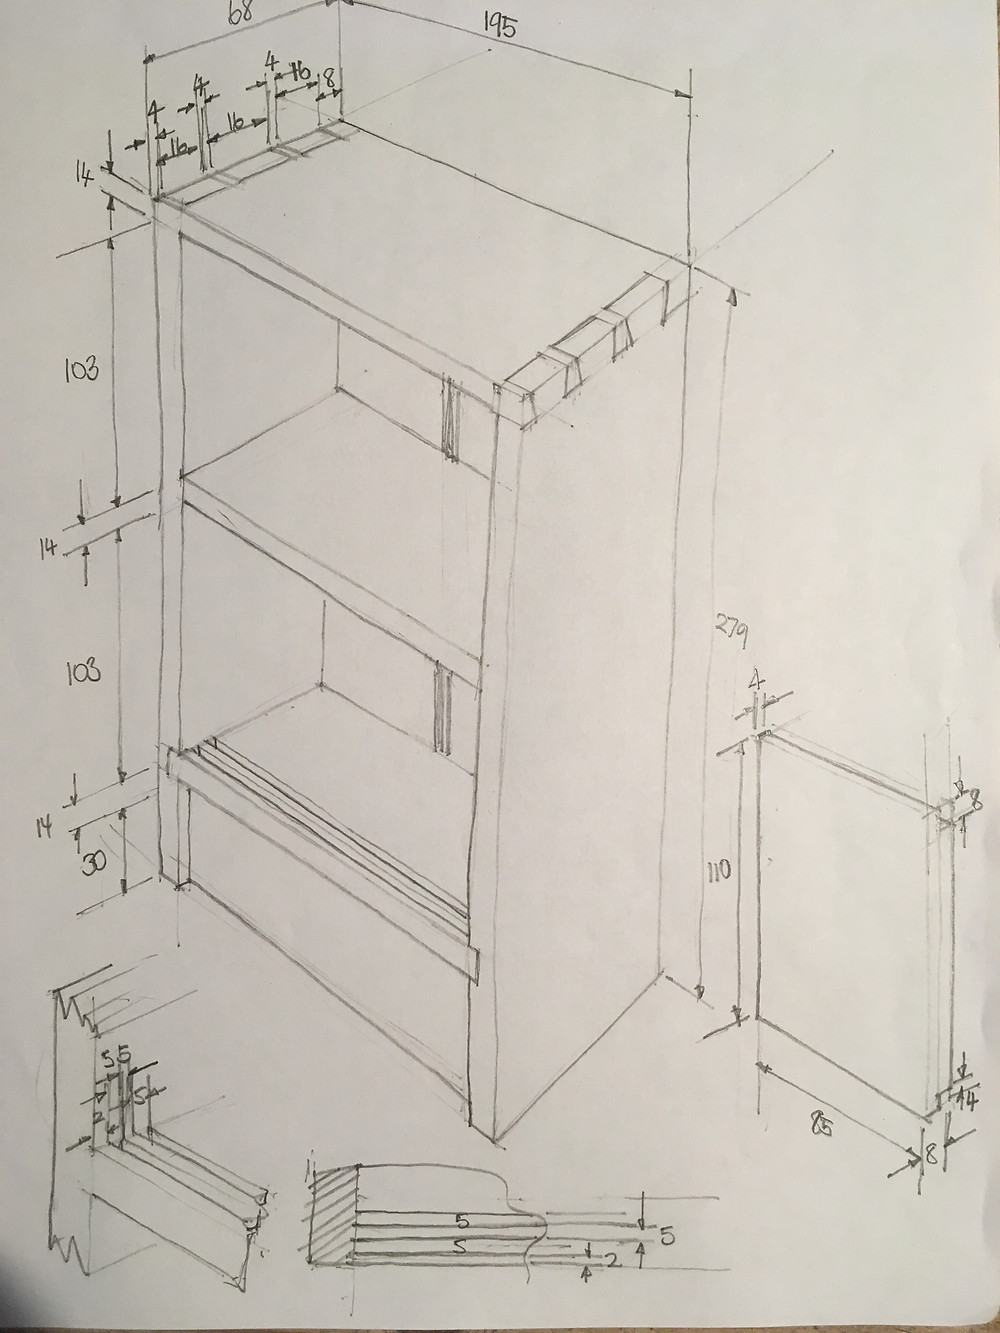 Plans for a small key cabinet woodwork project.